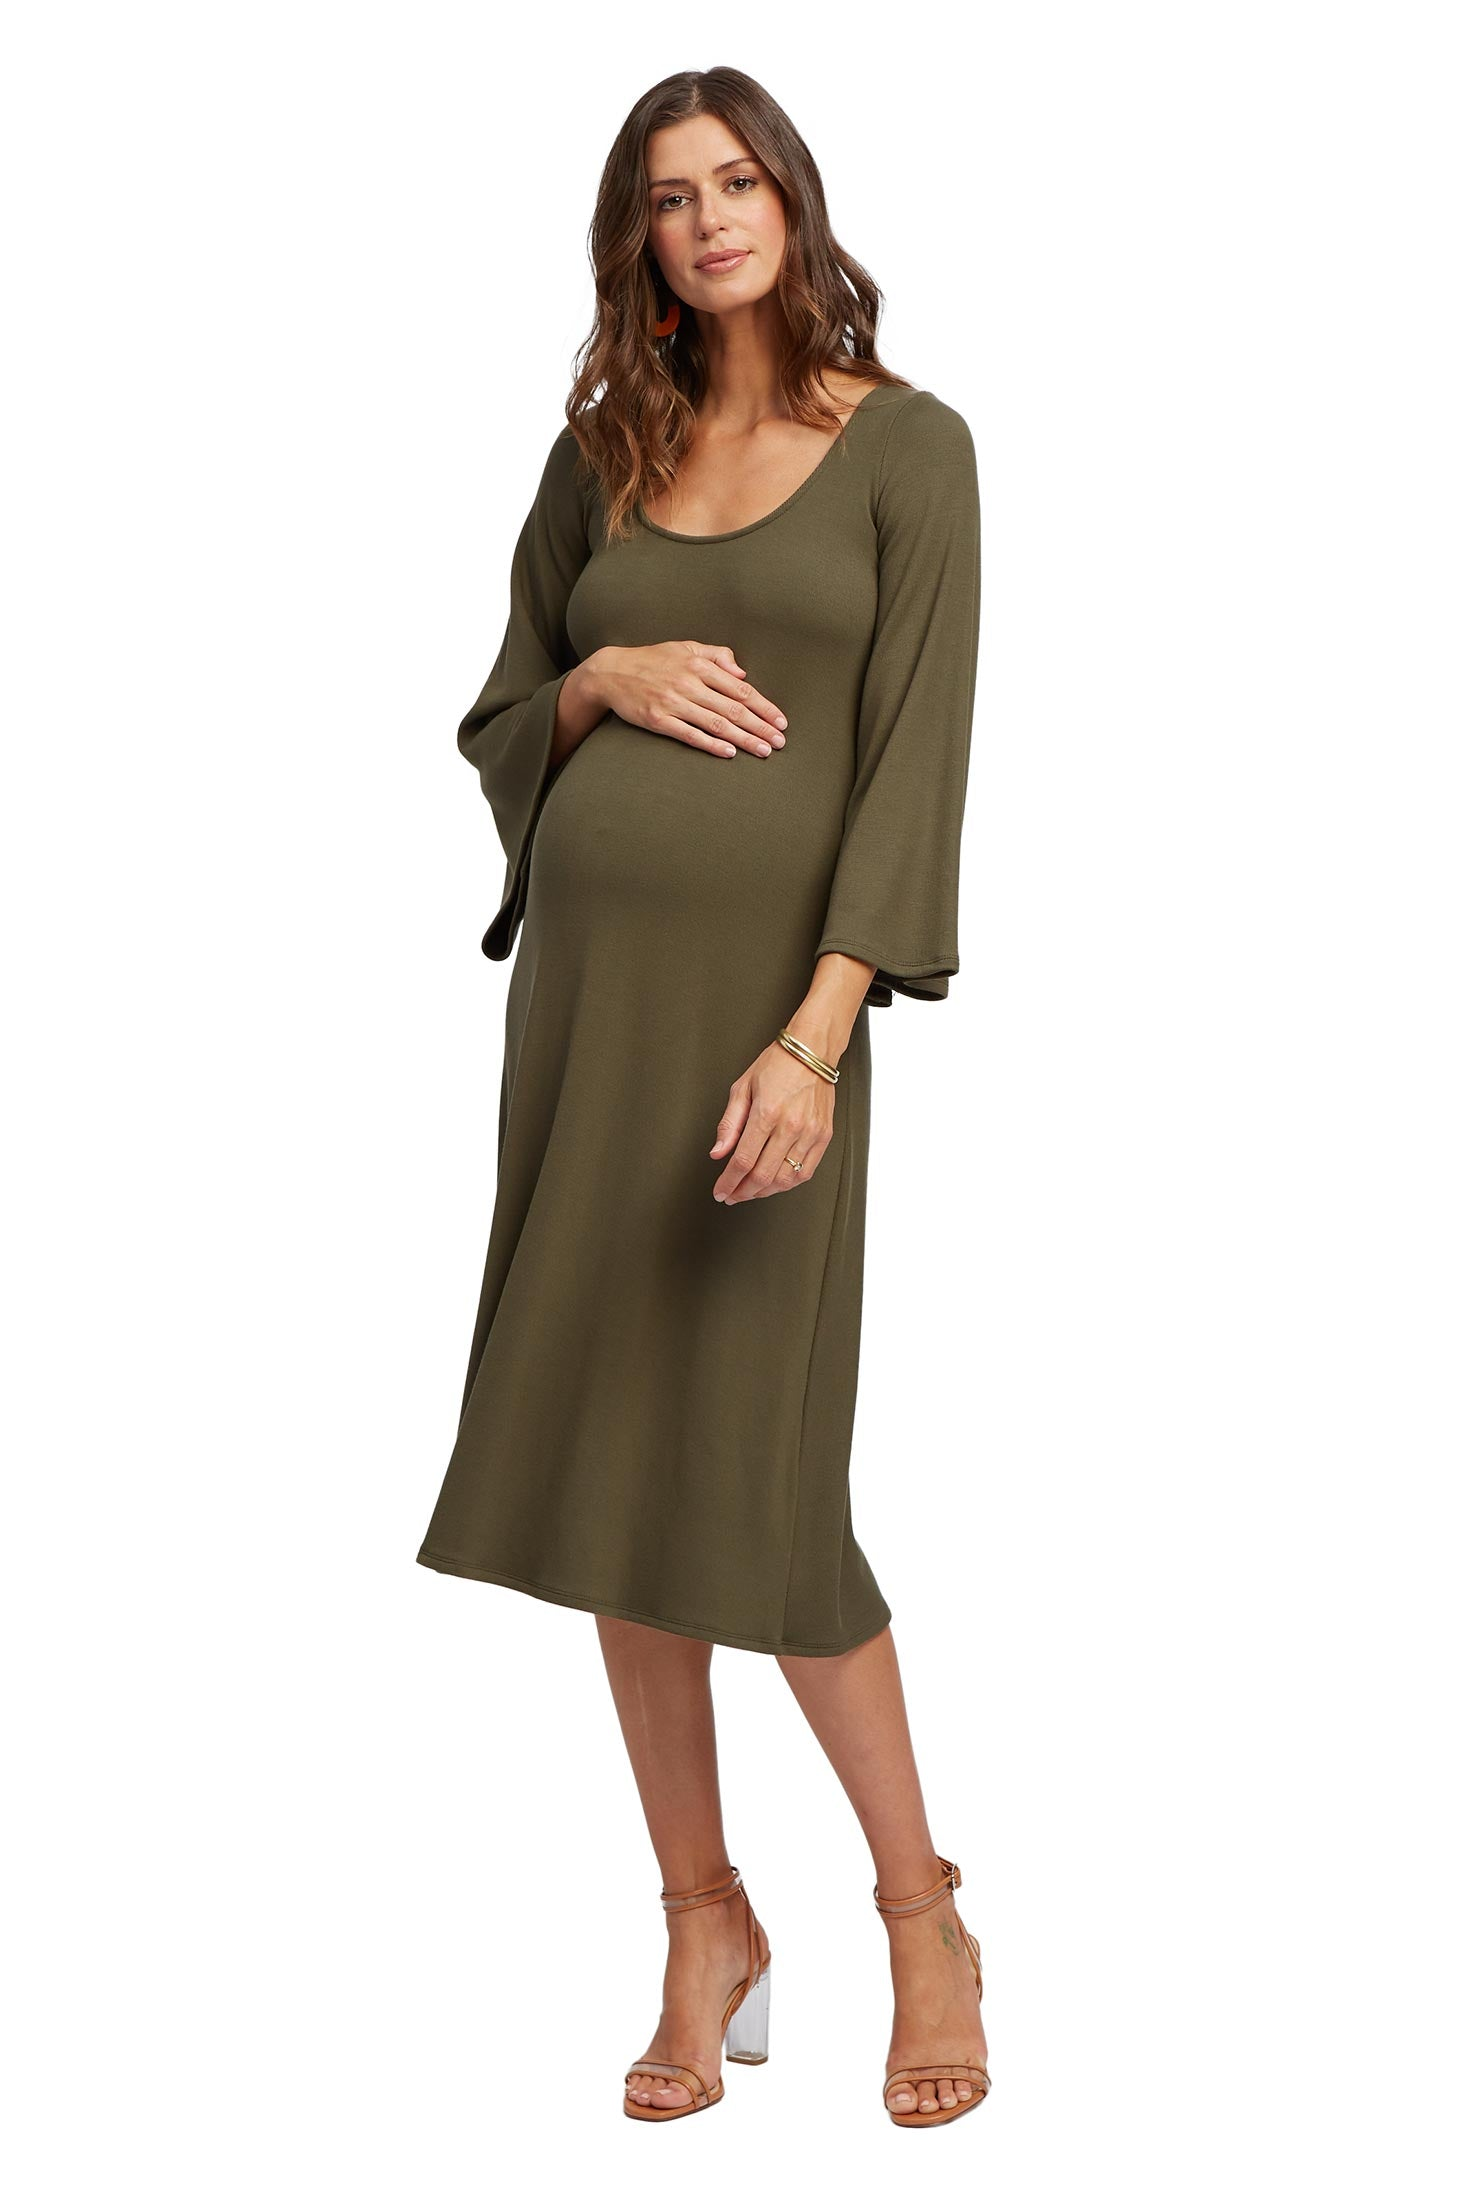 Luxe Rib Thora Dress - Cypress, Maternity